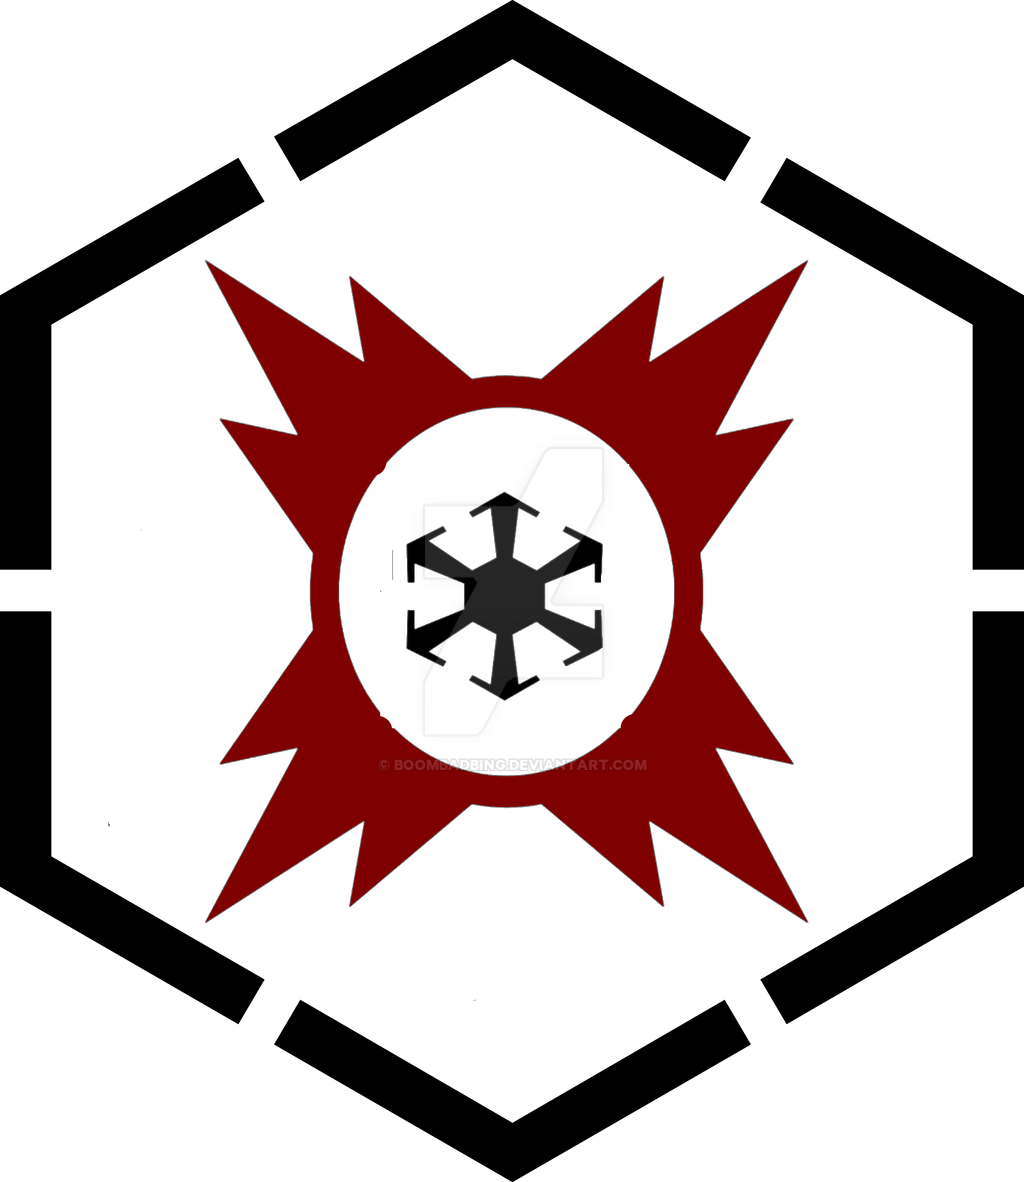 Logo Sith Empire By Boombadbing On Deviantart